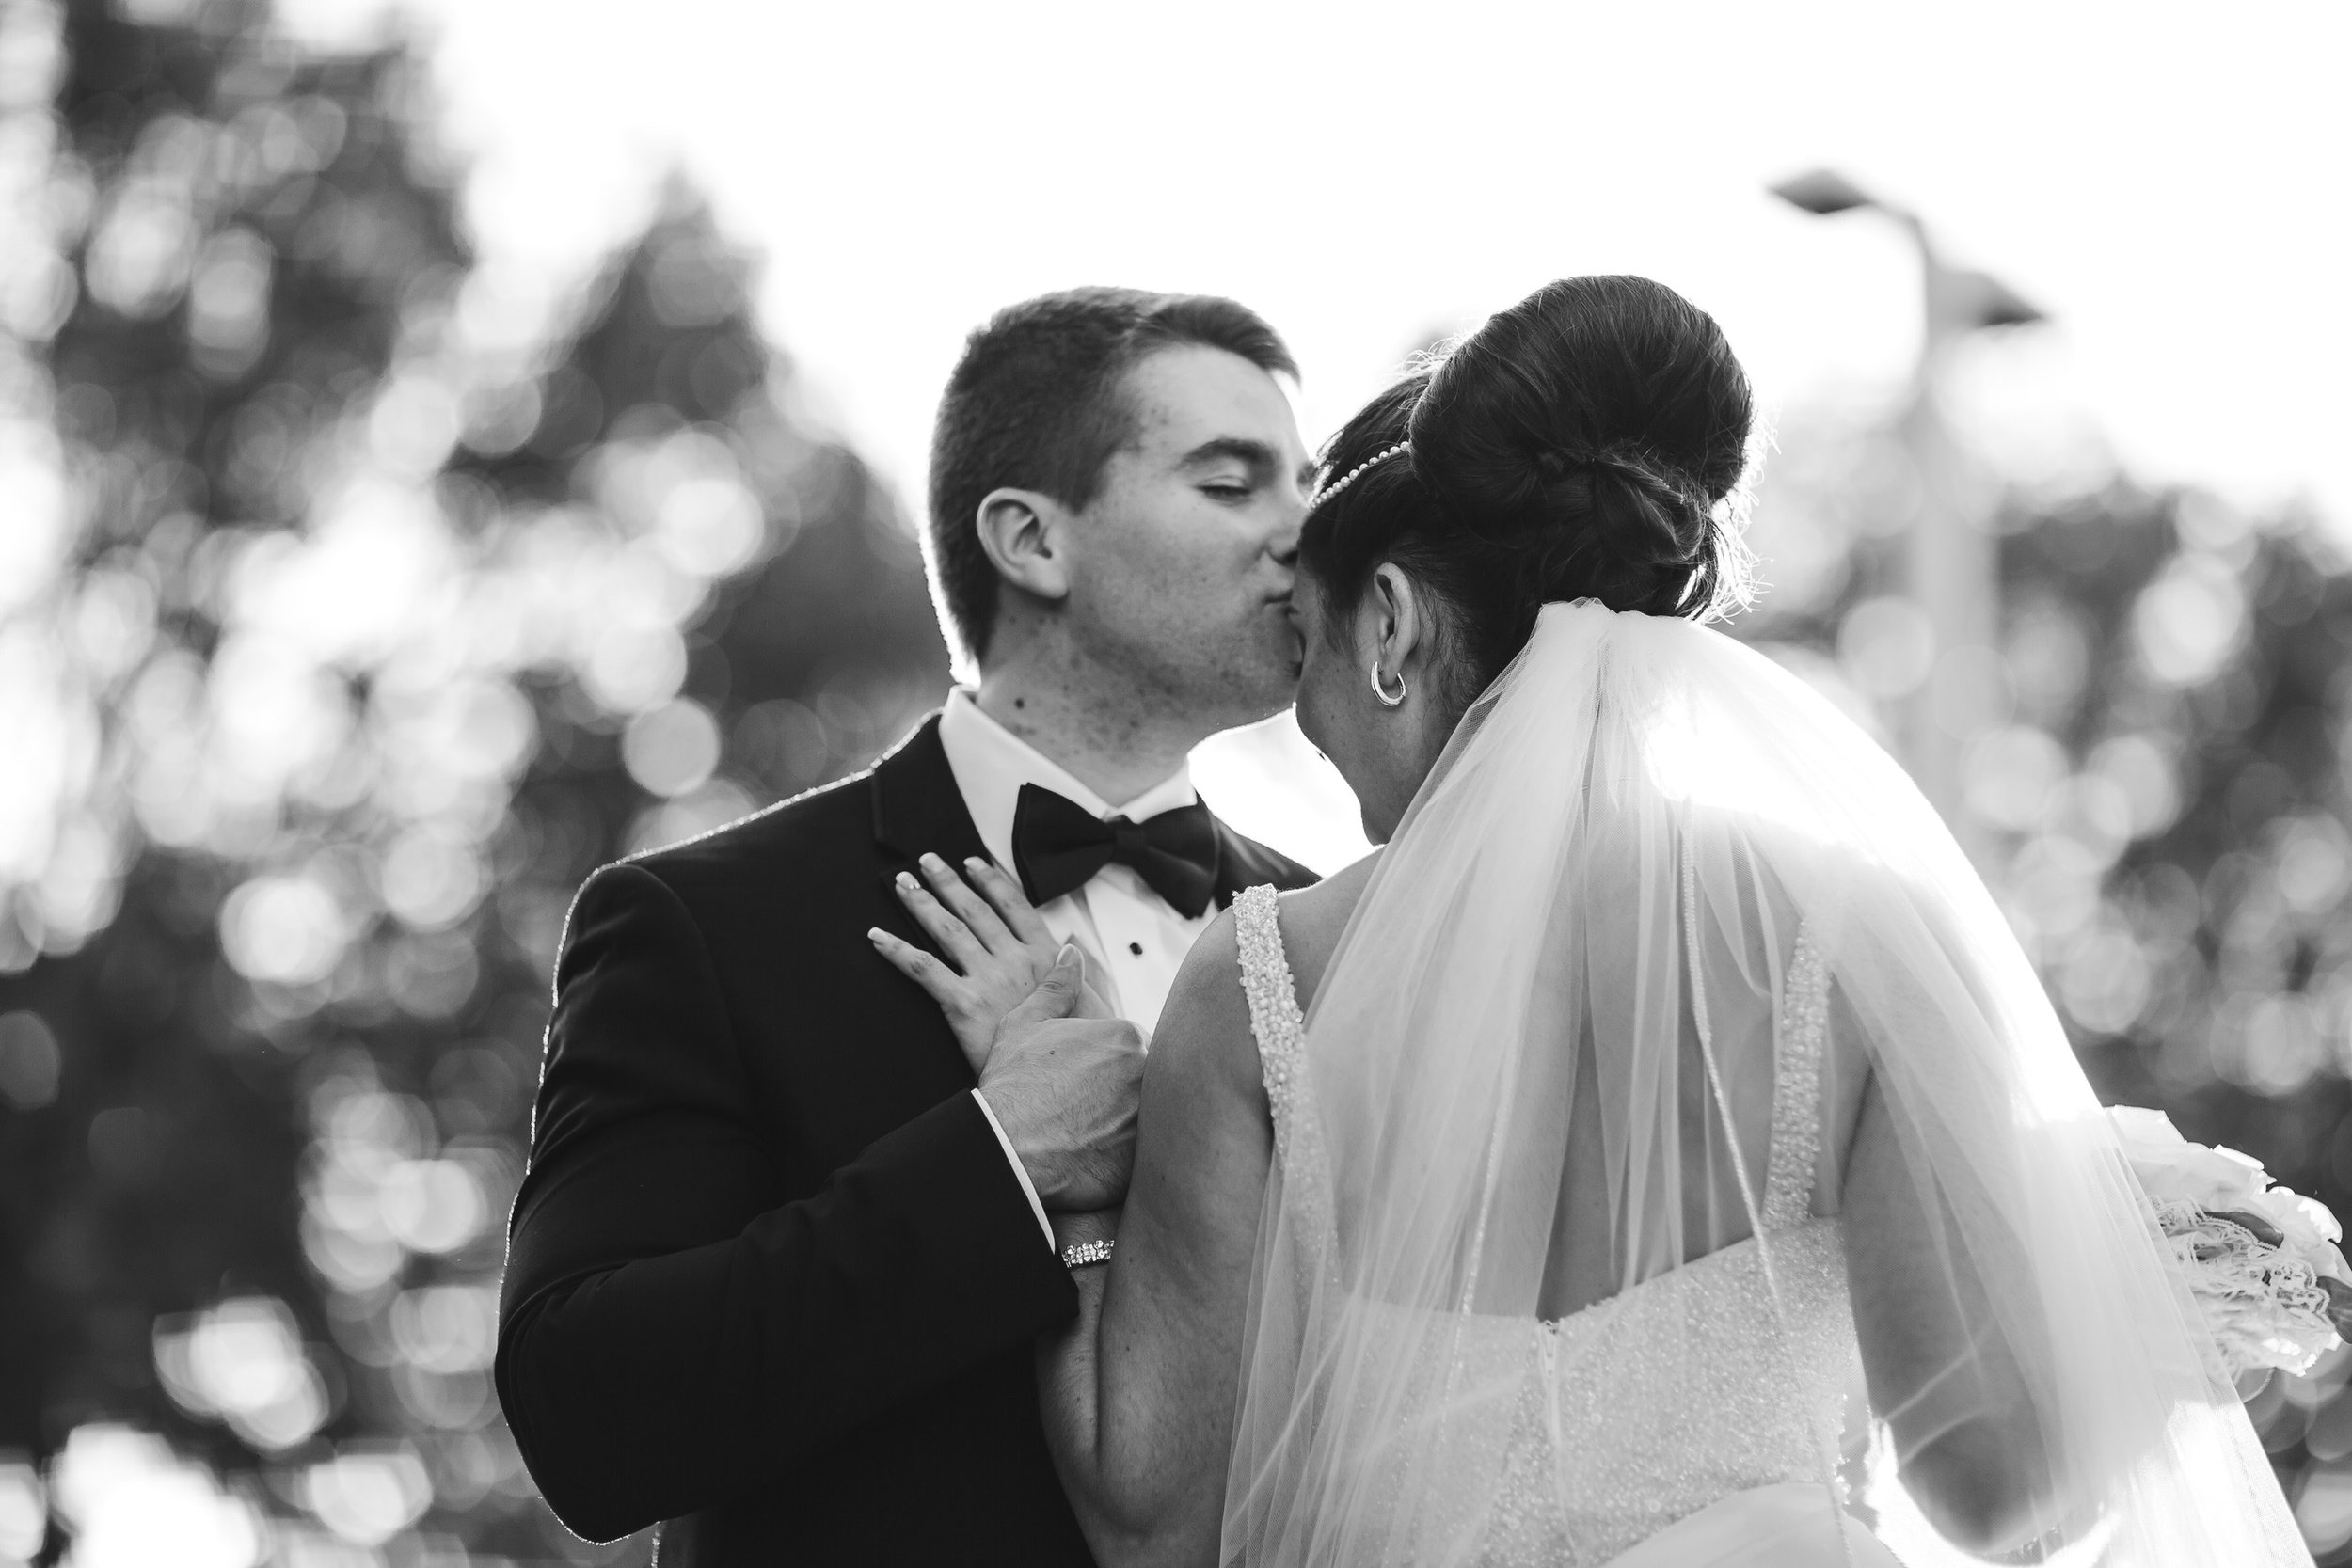 tiny_house_photo_bride_and_goom_kissing_black_and_white_wedding_photography.jpg